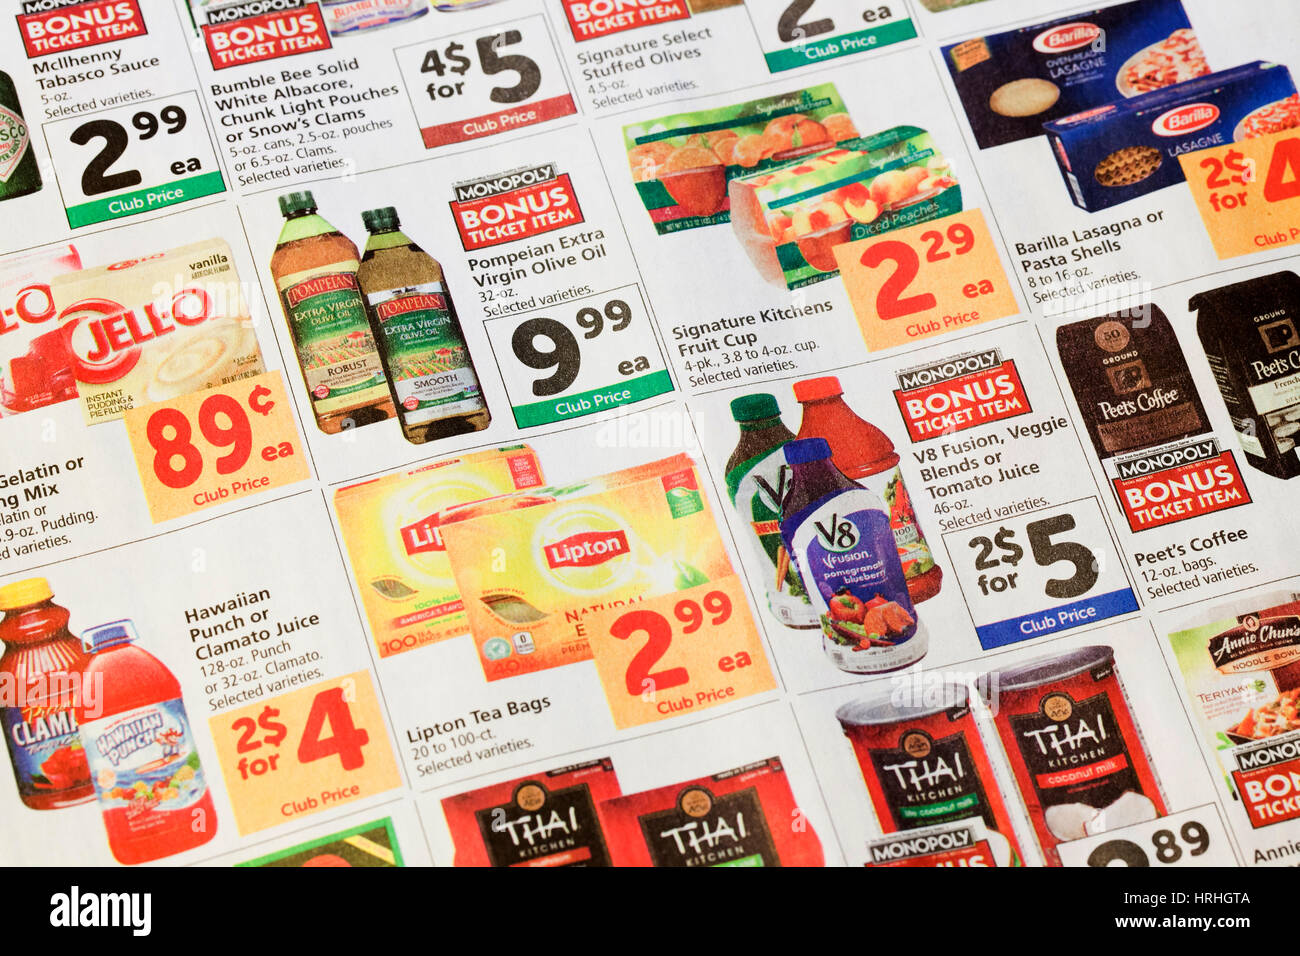 Grocery Store Mailer Coupons In Newspaper Usa Stock Photo Alamy